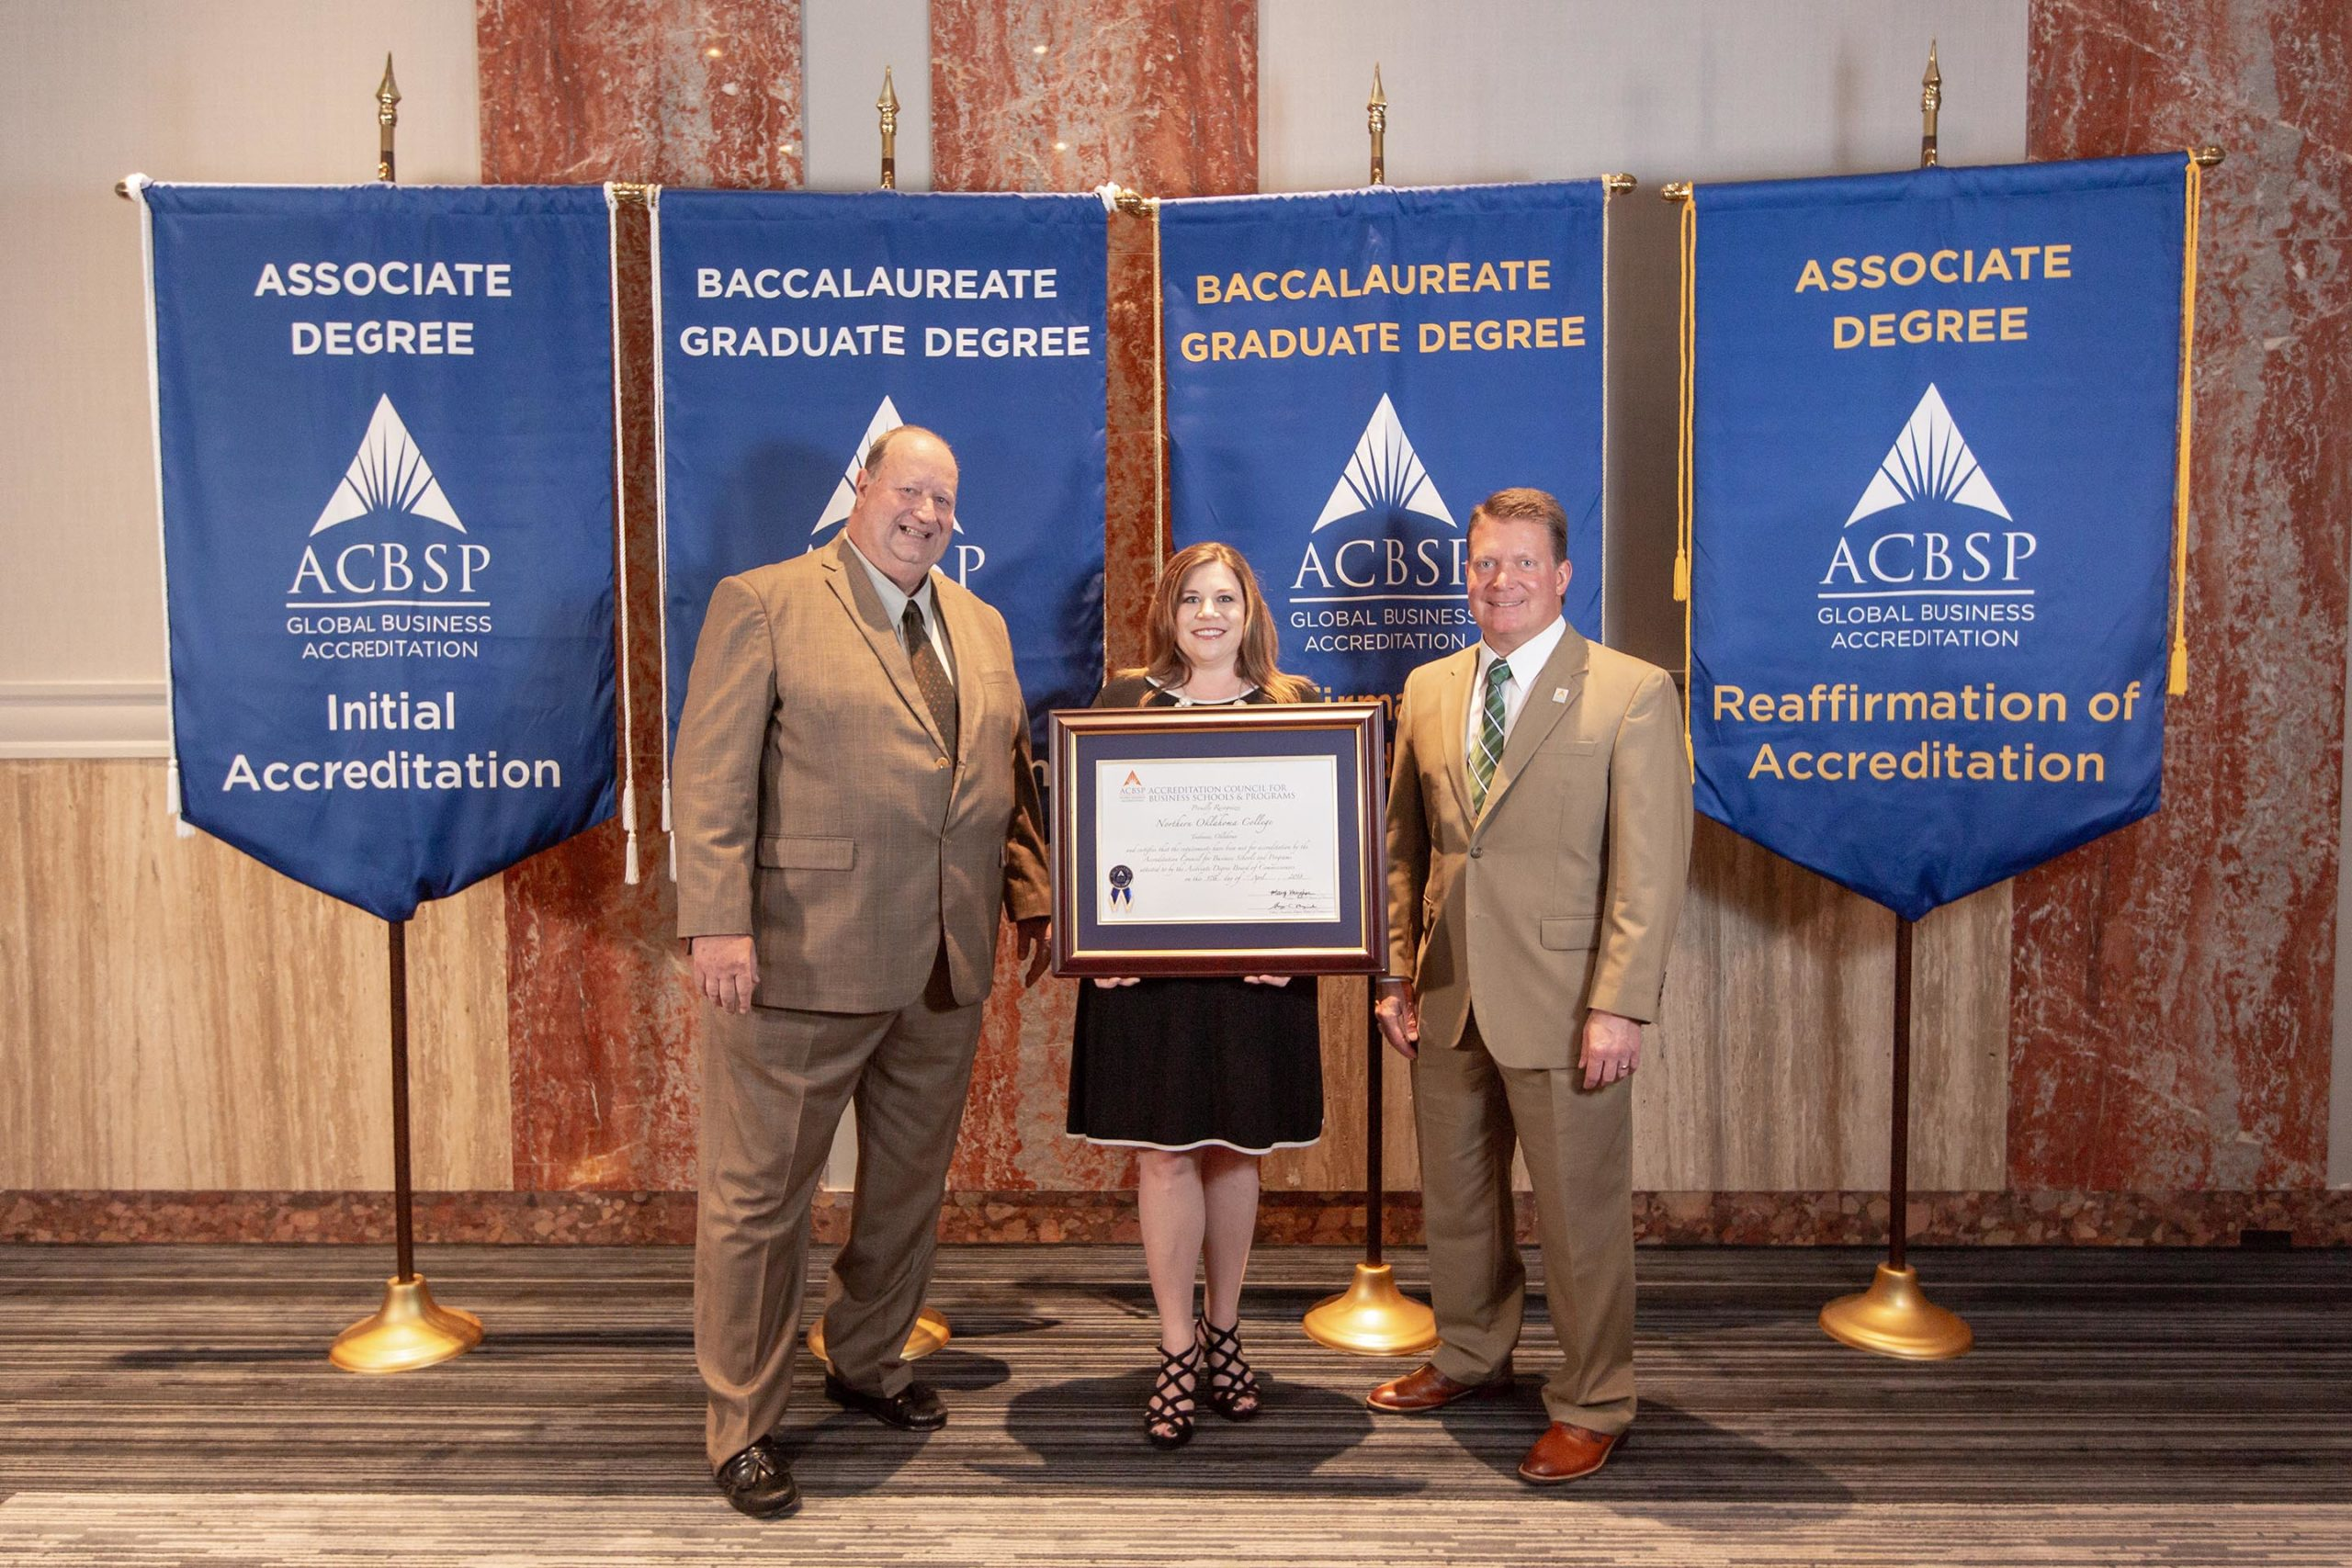 ACBSP Reaffirmation picture